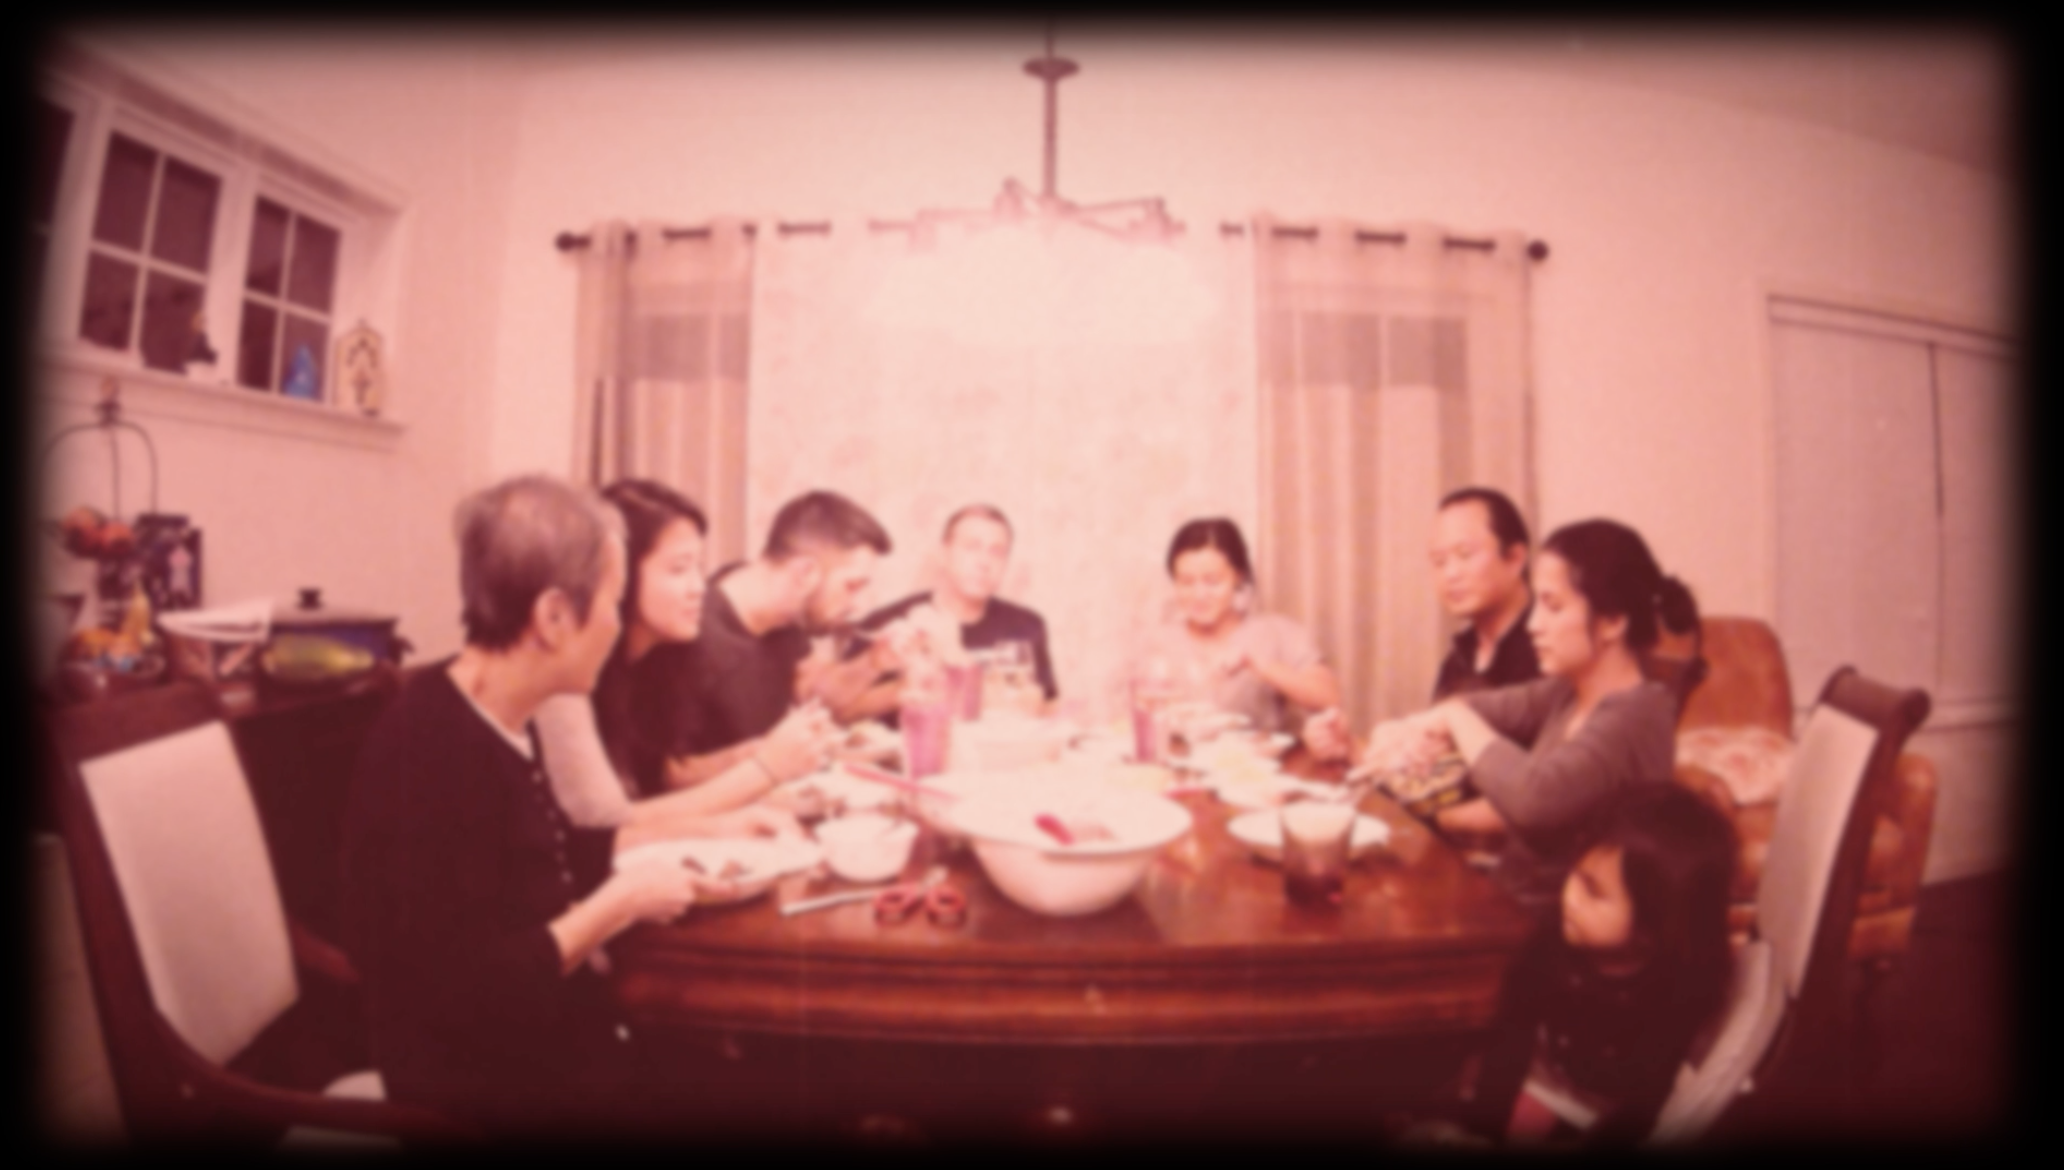 Family Dinner: Movie Still